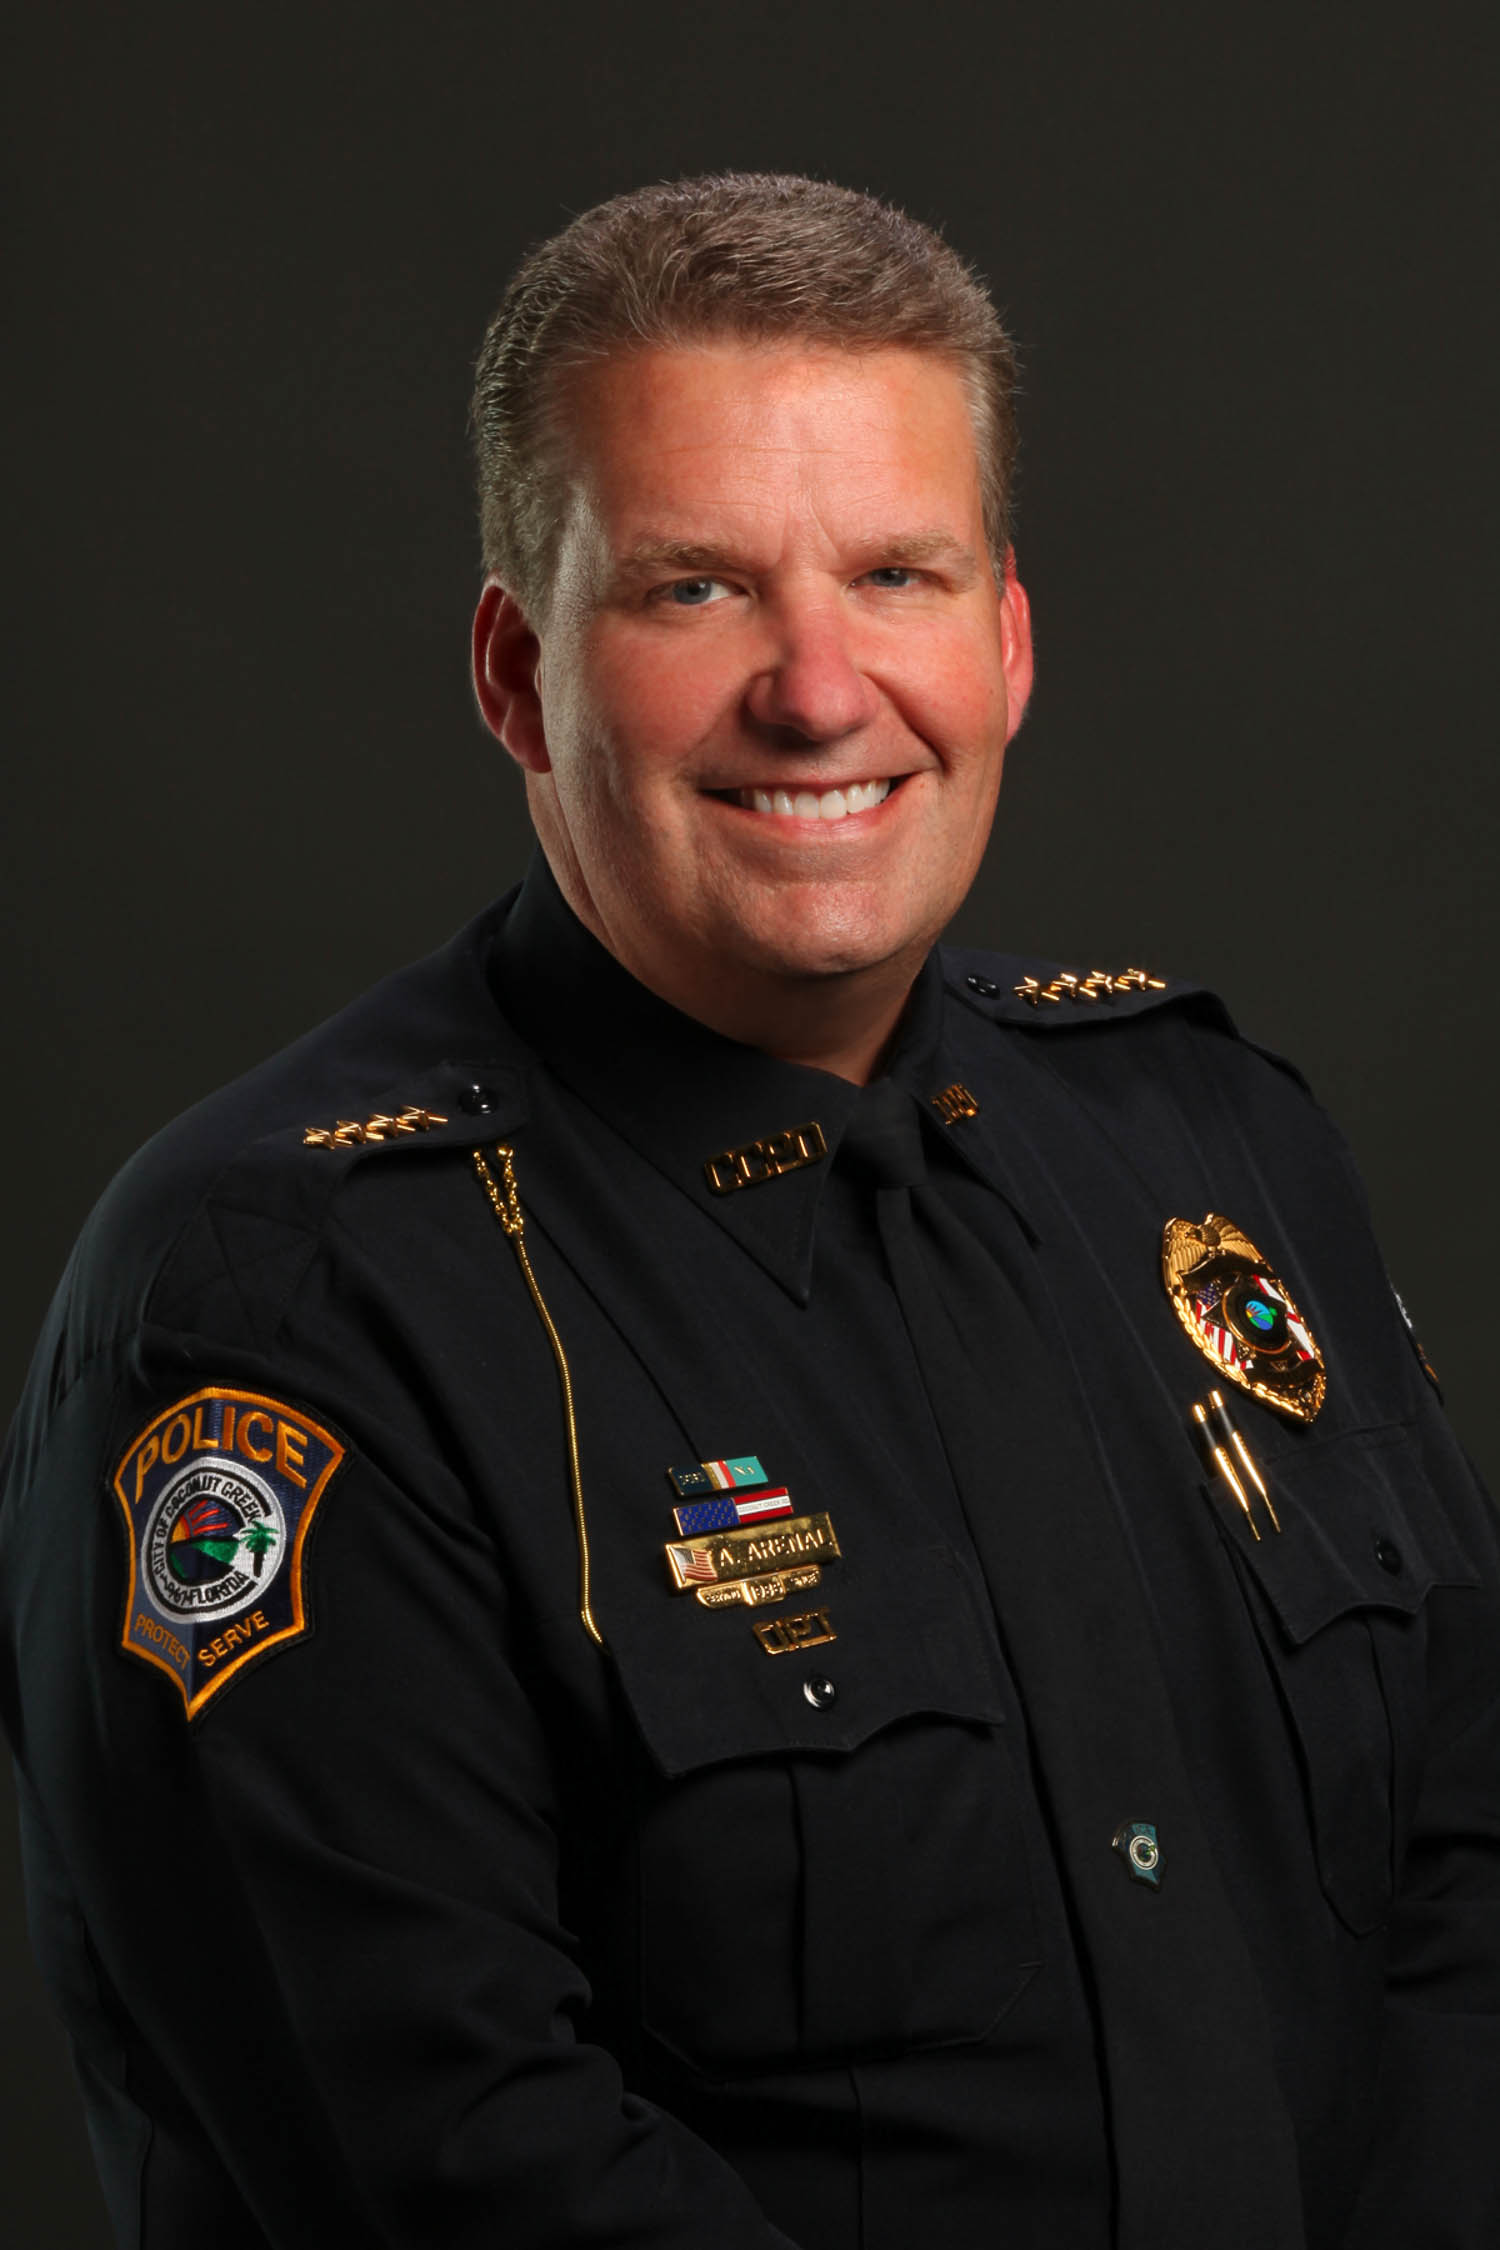 Coconut creek police chief - criminal defense attorney can defend your rights